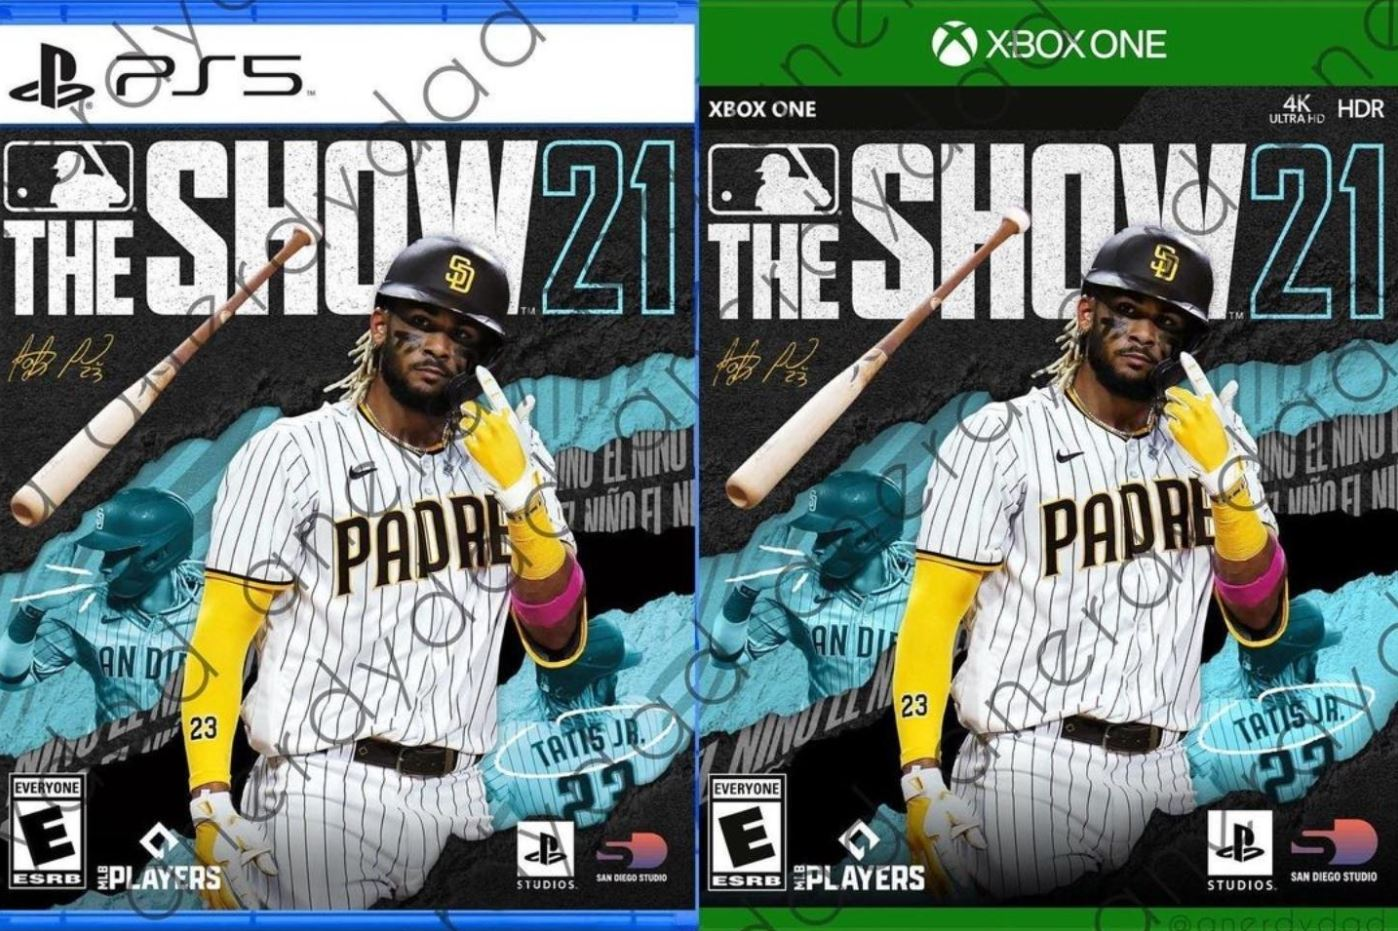 mlb-the-show-21-ps5-and-xbox-box-art-leaked-confirming-game-will-go-multiplatform-this-year-1